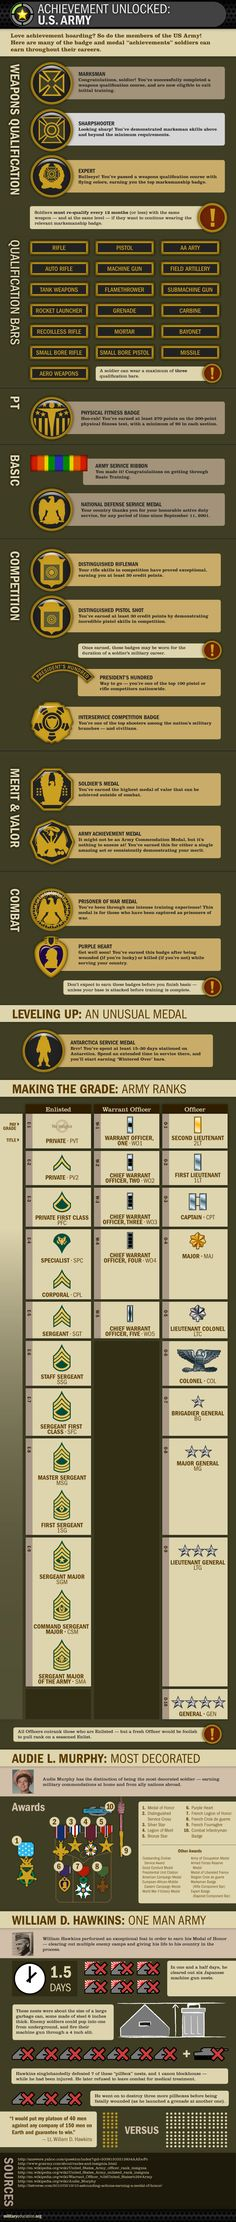 Love achievement hoarding? So do members of the US Army.